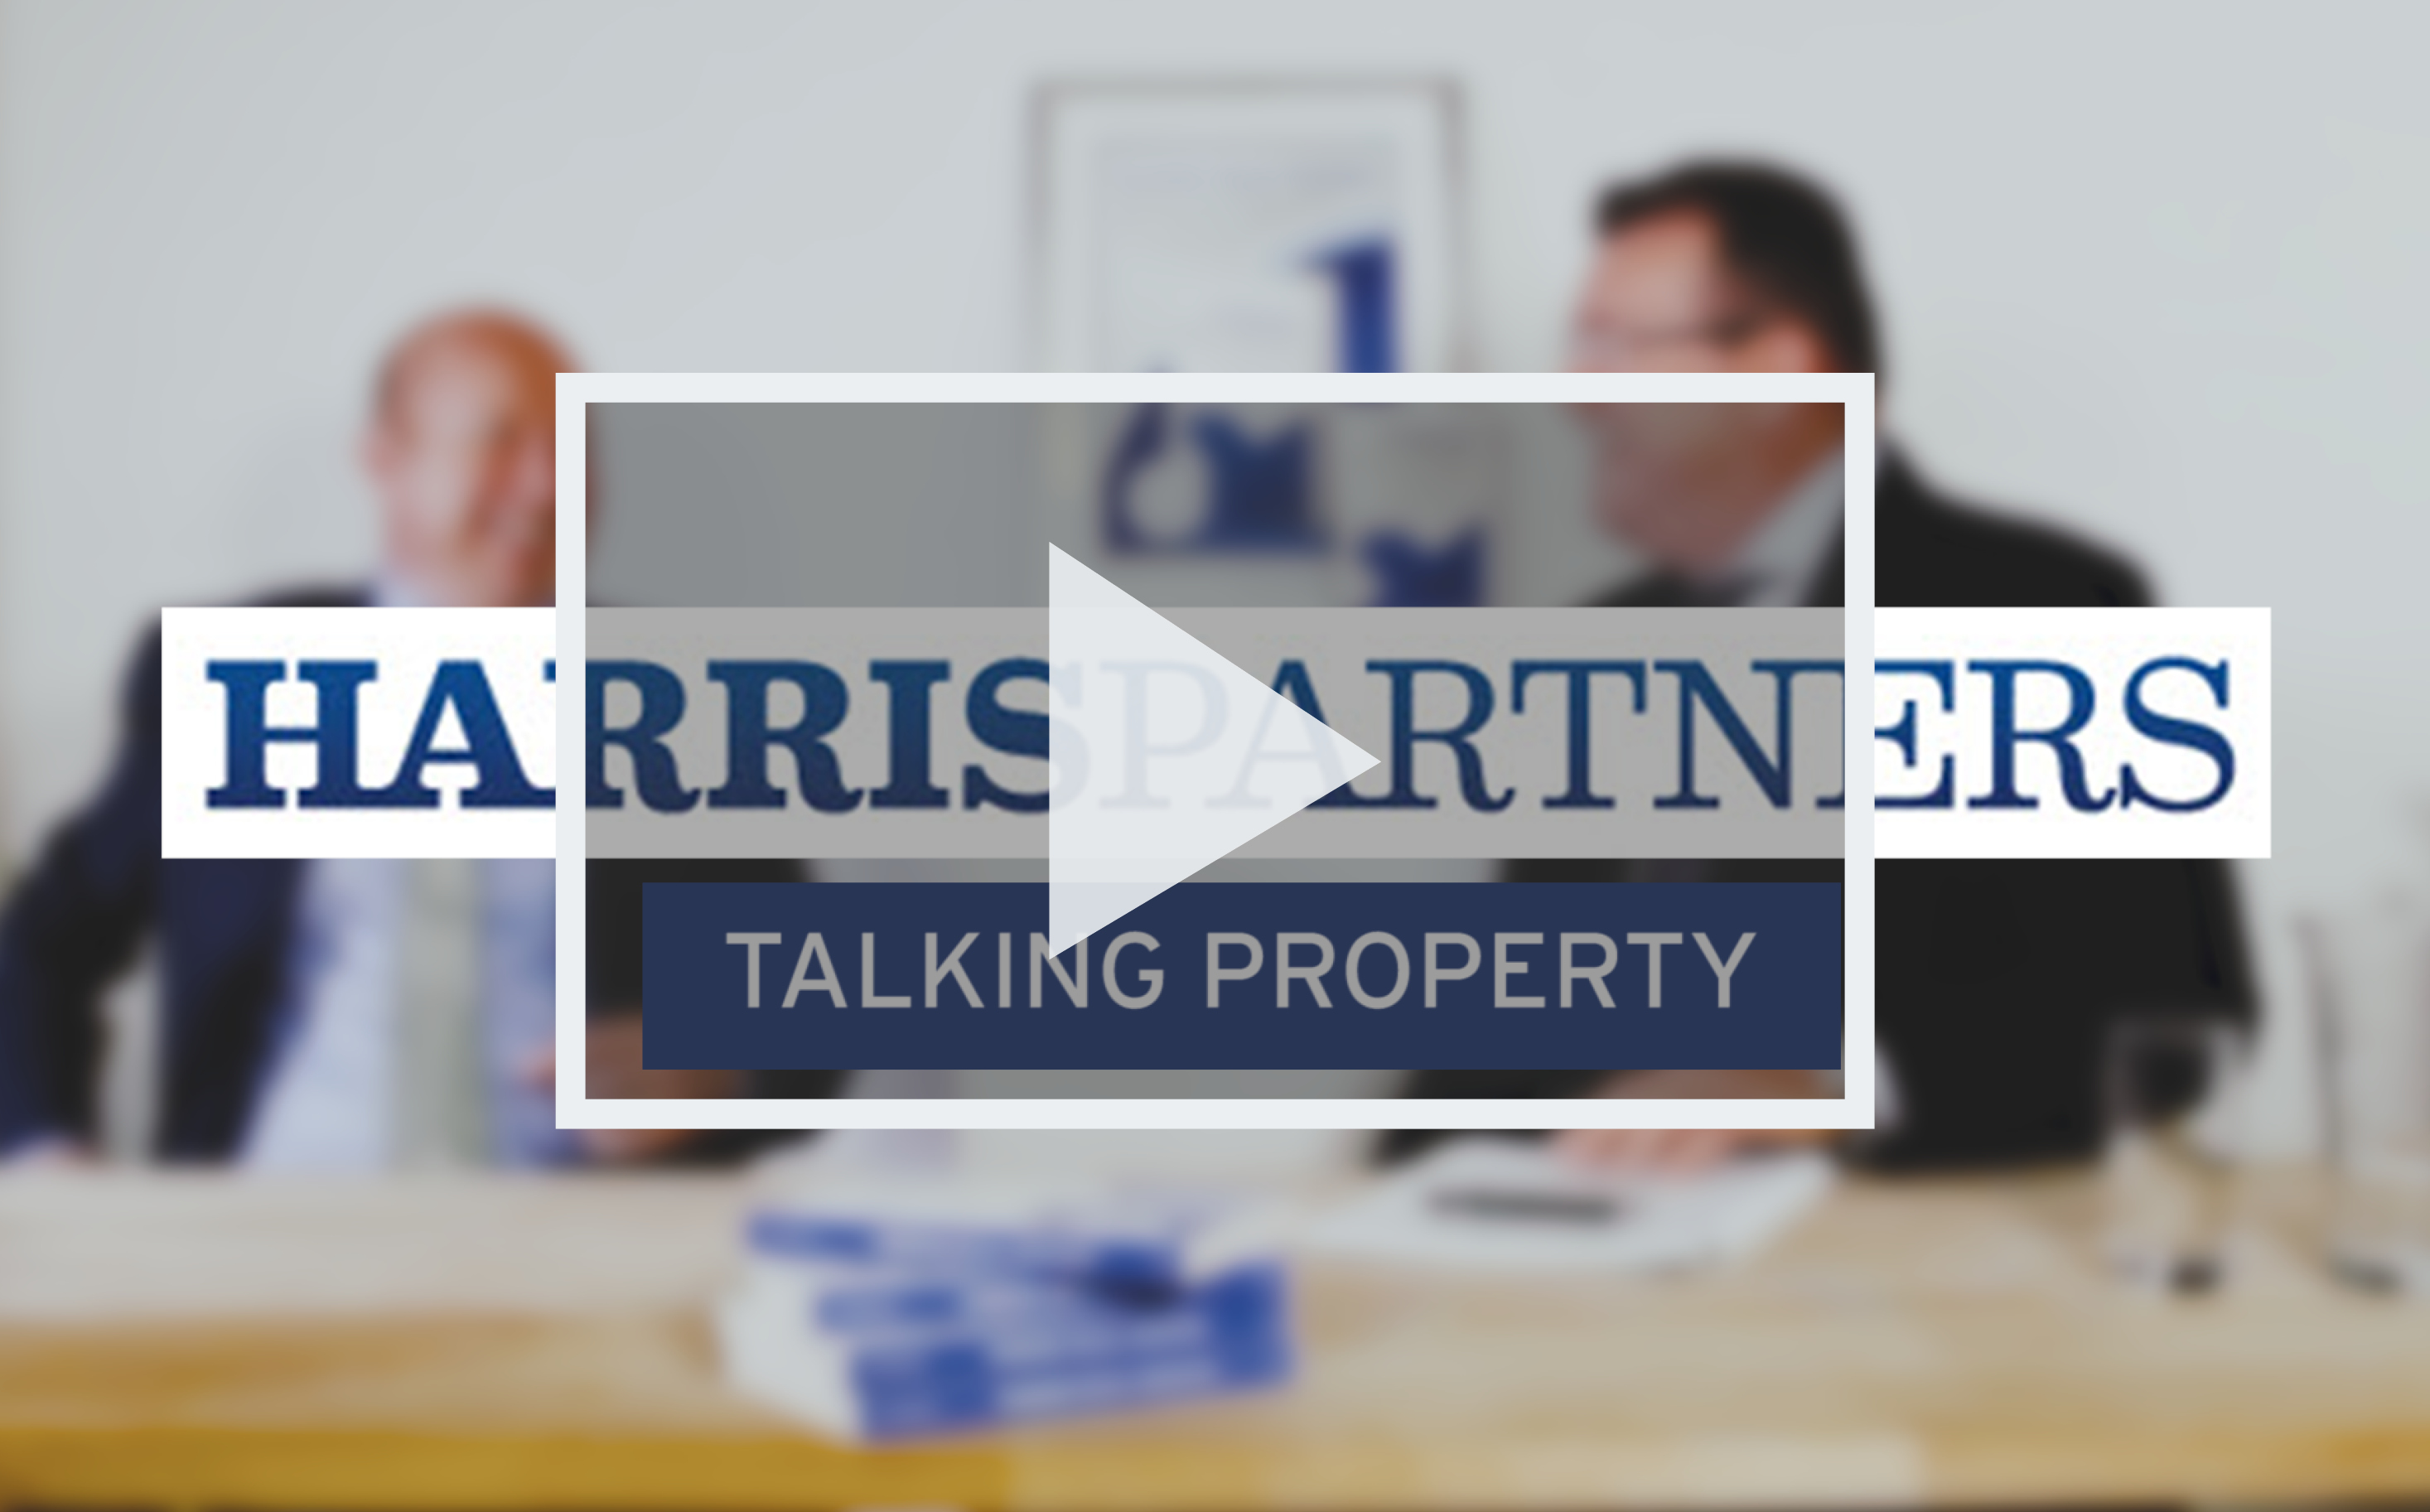 talking property, louis christopher, 2018 forecast, 2018 property market, 2018 property forecast, balmain real estate, inner west real estate, sydney property. peter o'malley, harris partners, sqm research, property market